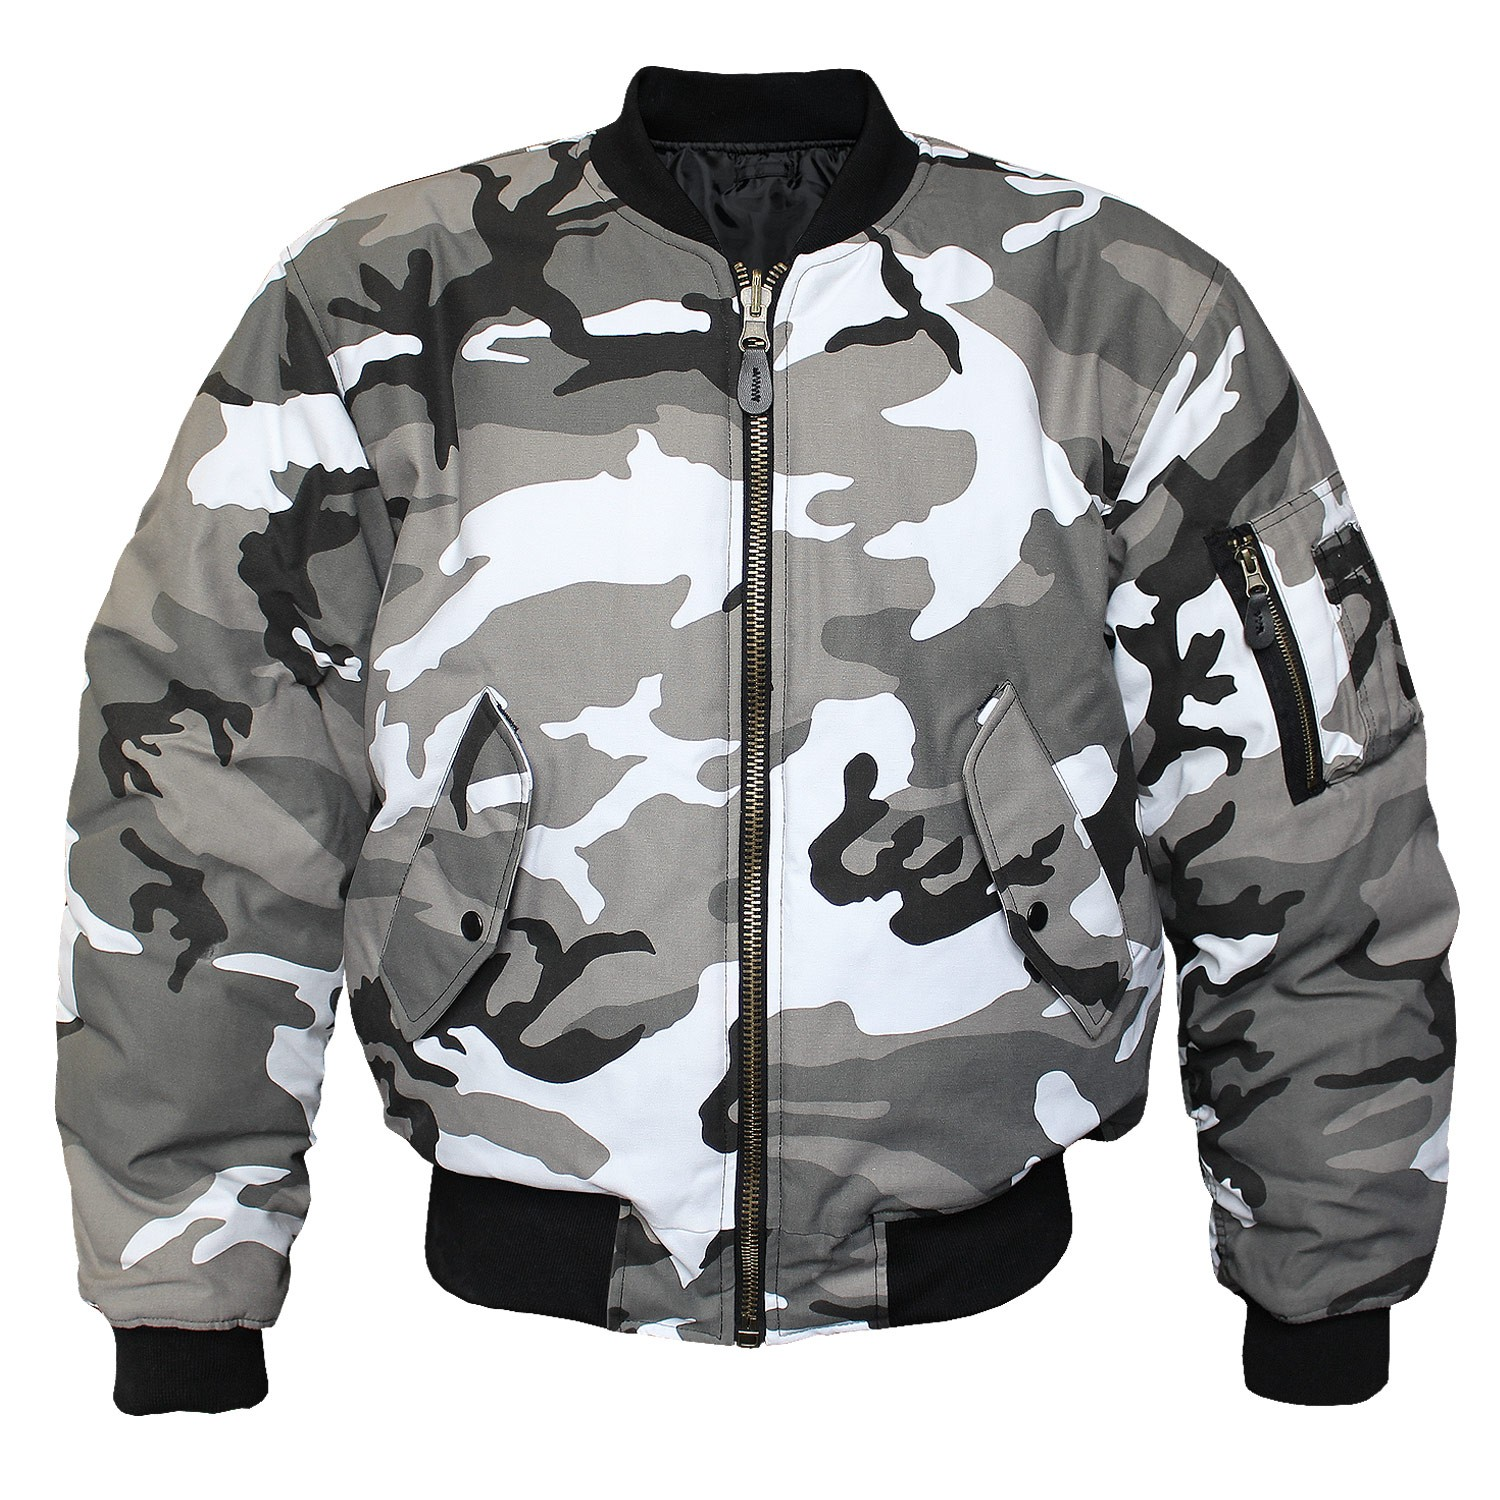 rivenditore online c0b41 ef7d2 GIACCA BOMBER MA1